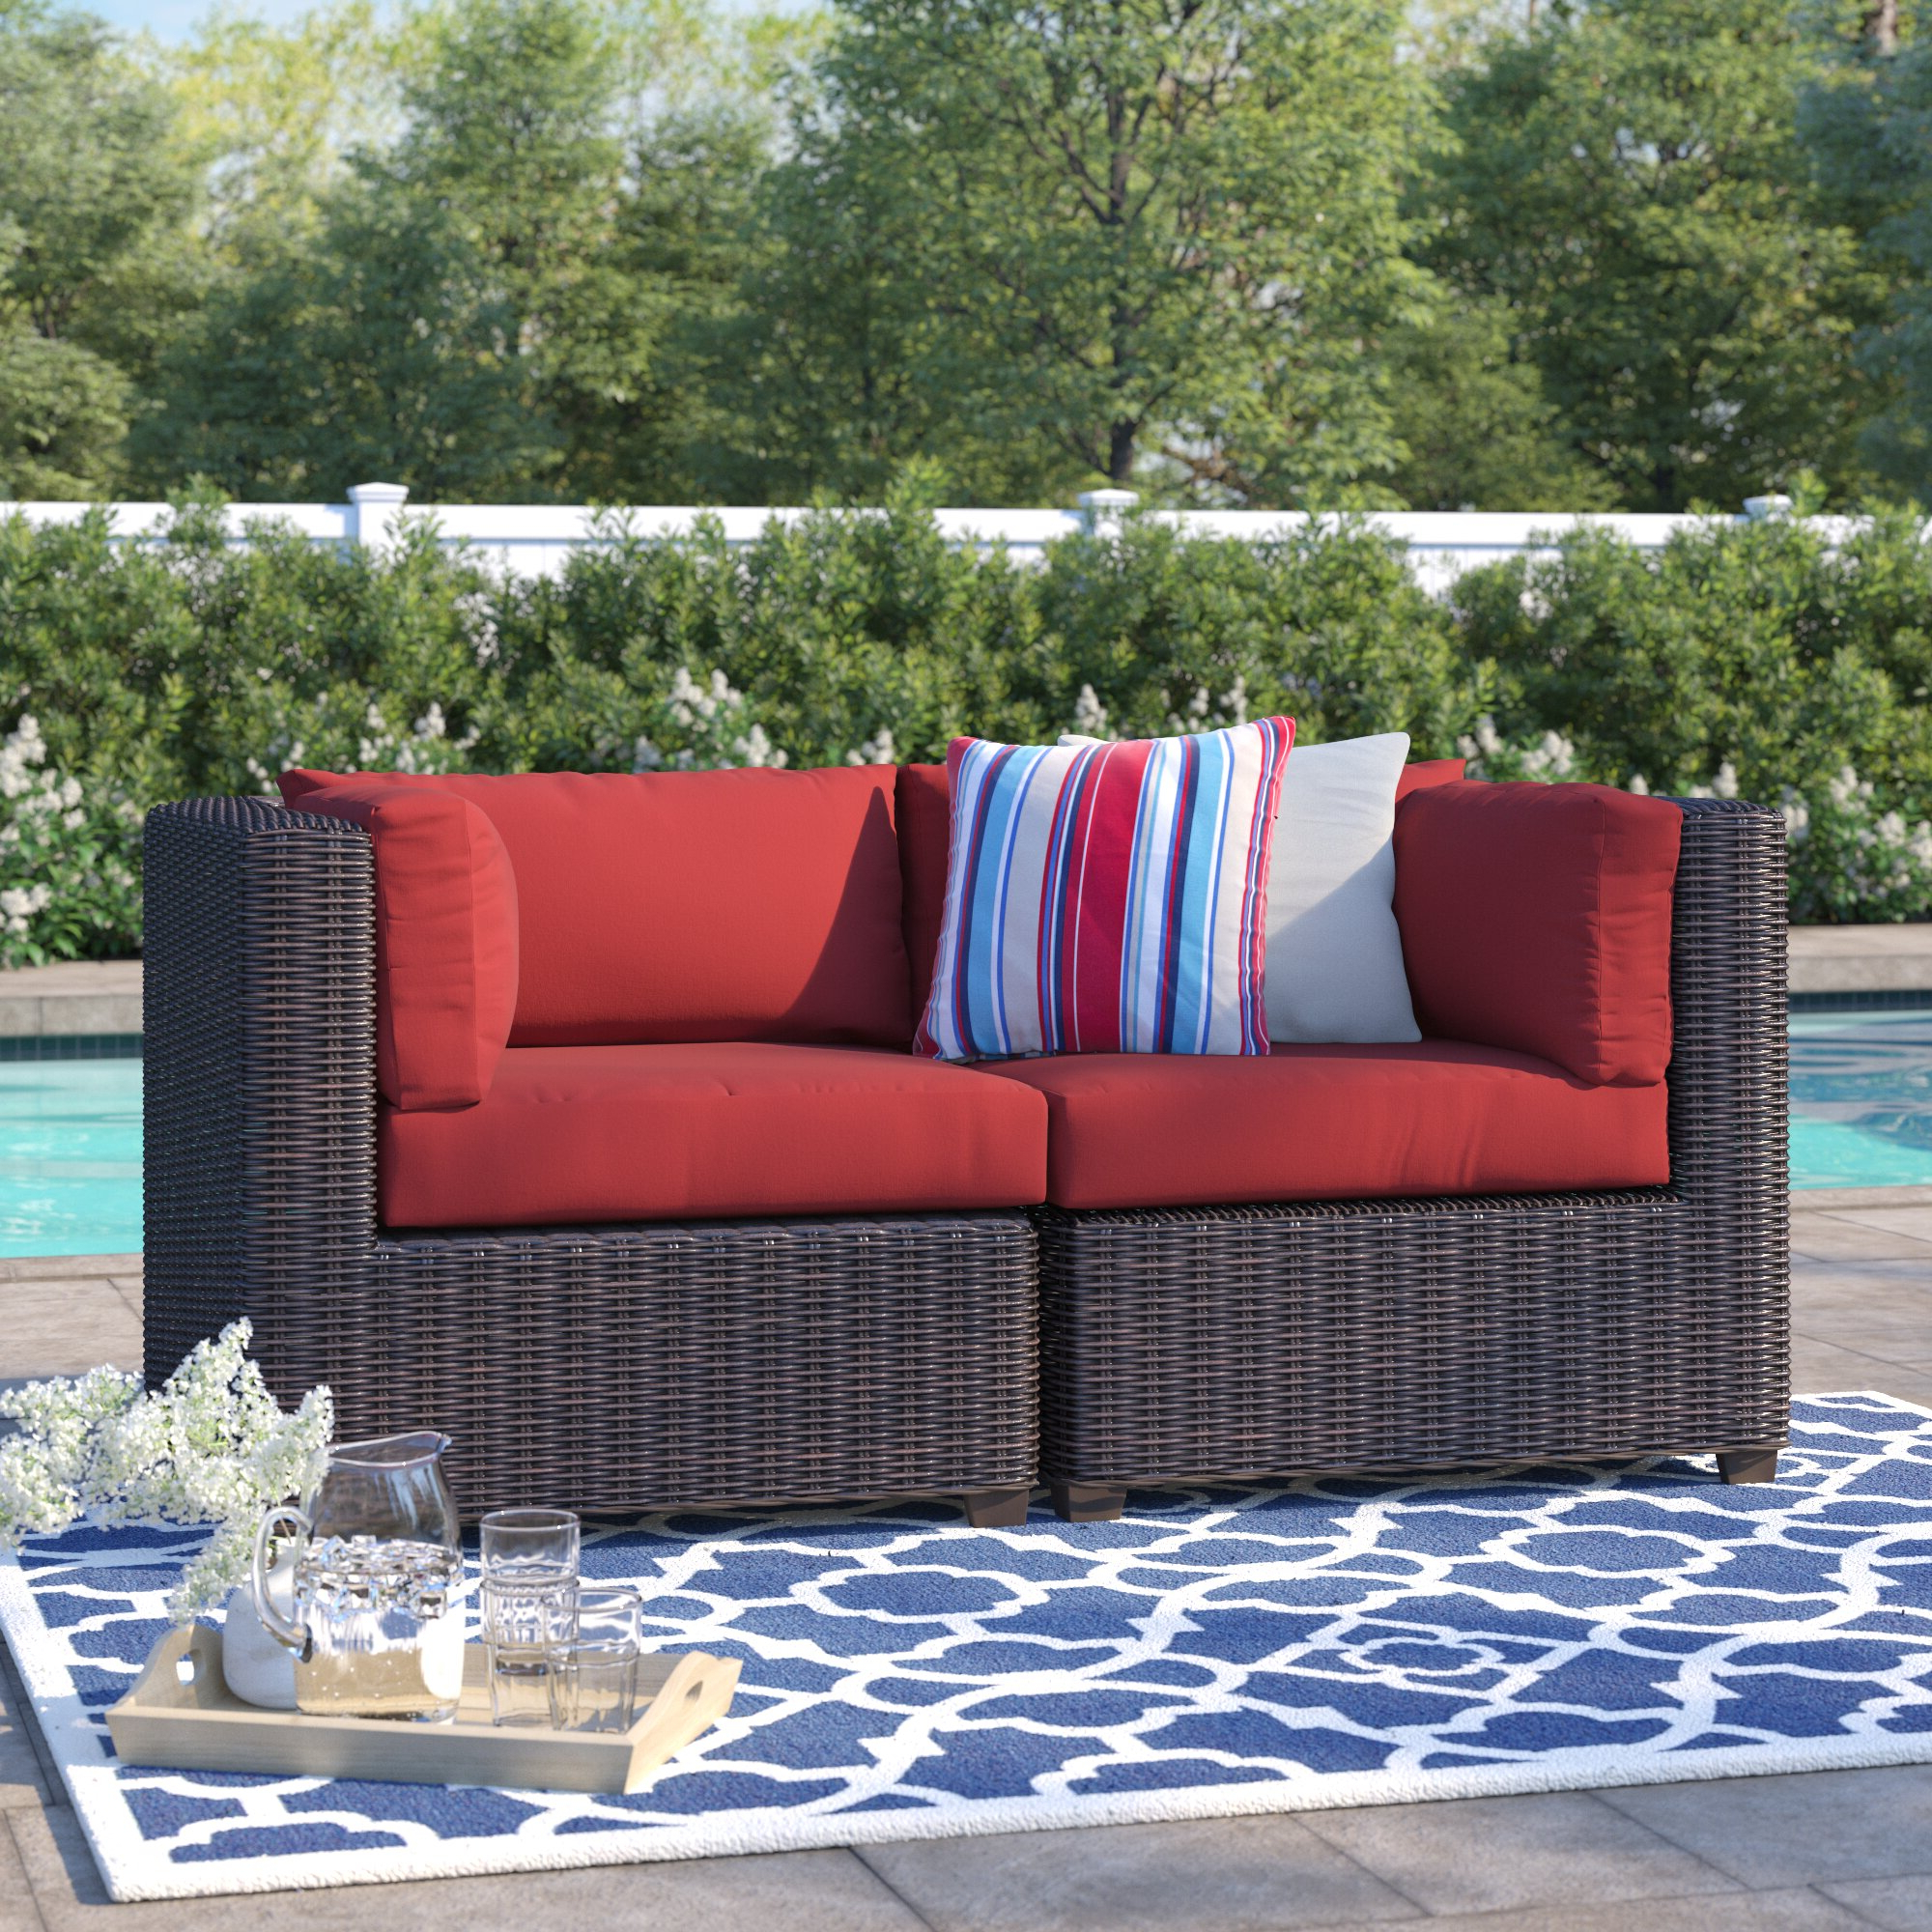 Fairfield Patio Loveseat With Cushions Throughout Most Up To Date Camak Patio Loveseats With Cushions (View 12 of 20)